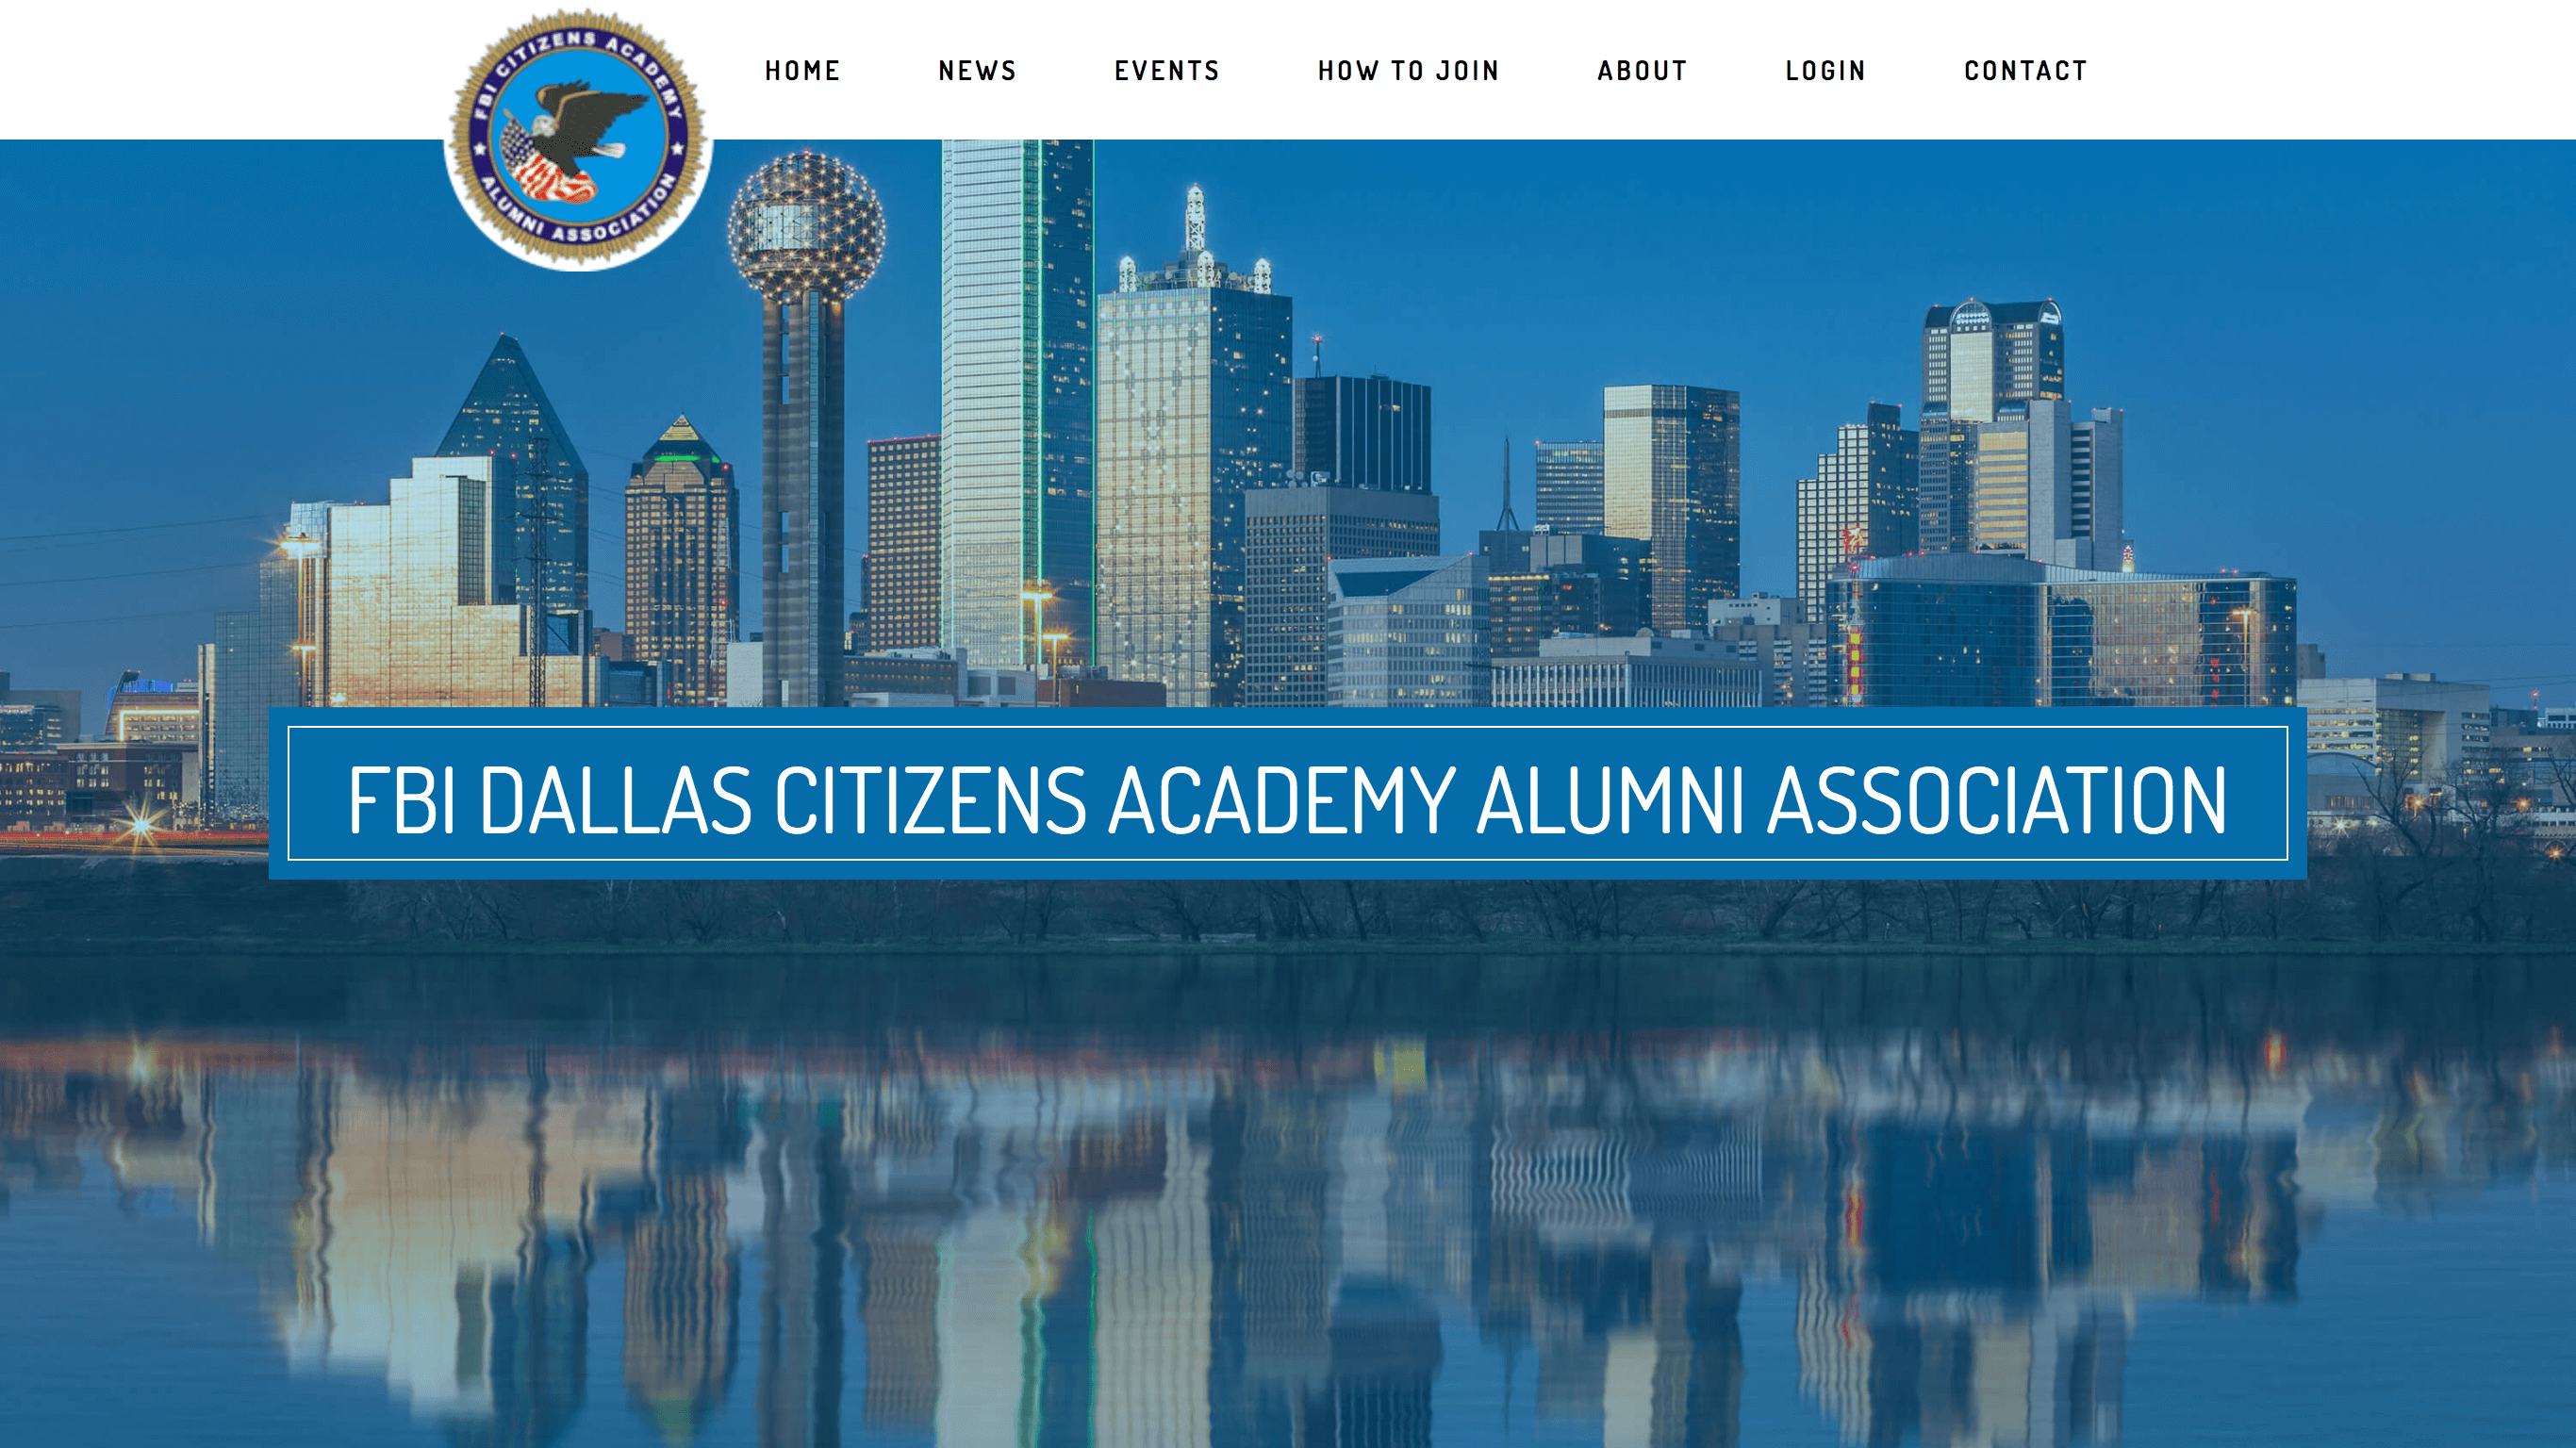 FBI Dallas Citizens Academy Alumni Association